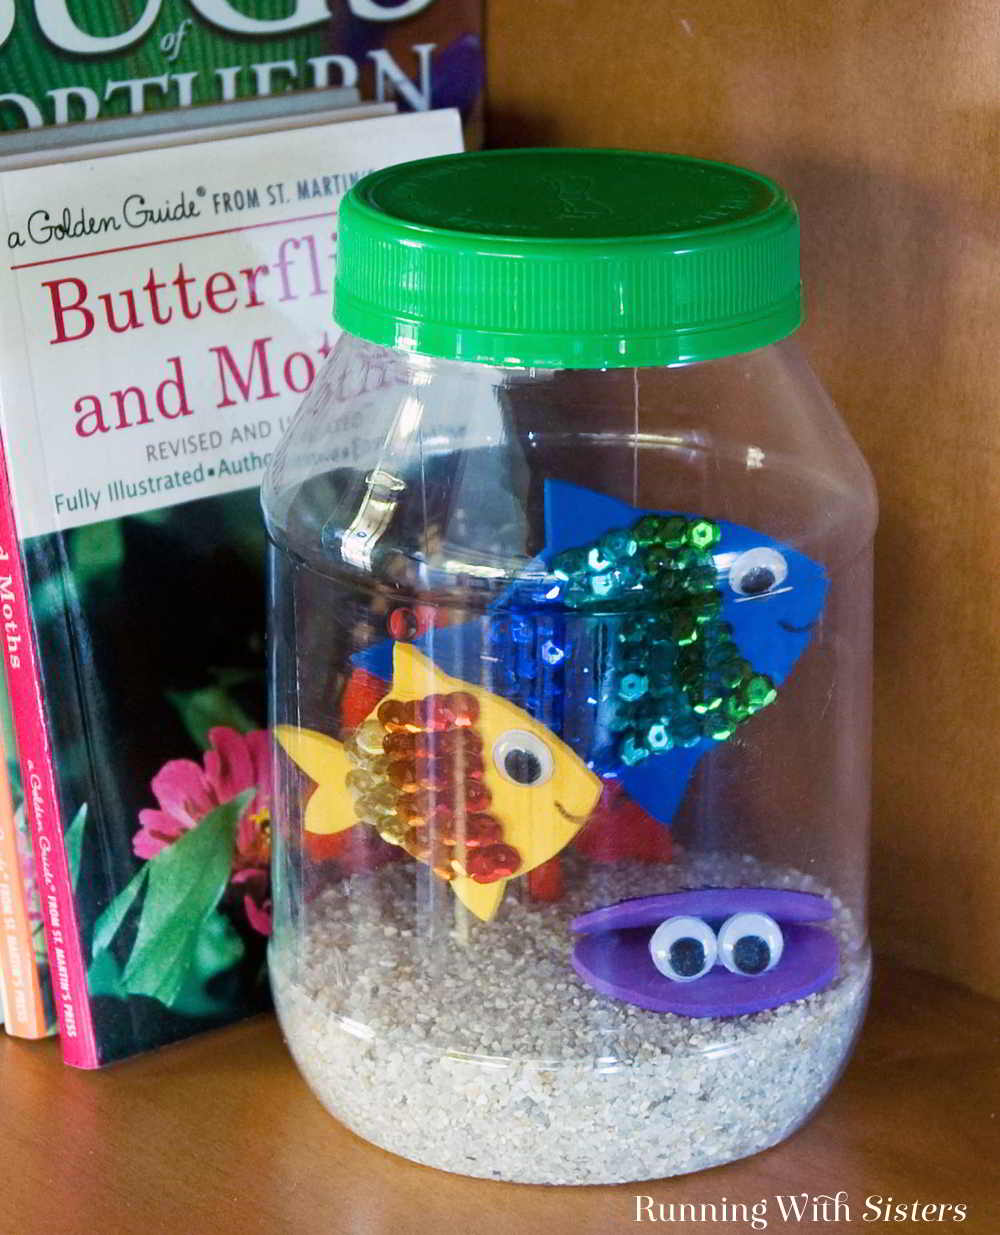 Kid Craft! Make a fun jar aquarium using craft foam, sequins, and a plastic Mayo jar. Fun to make with friends!